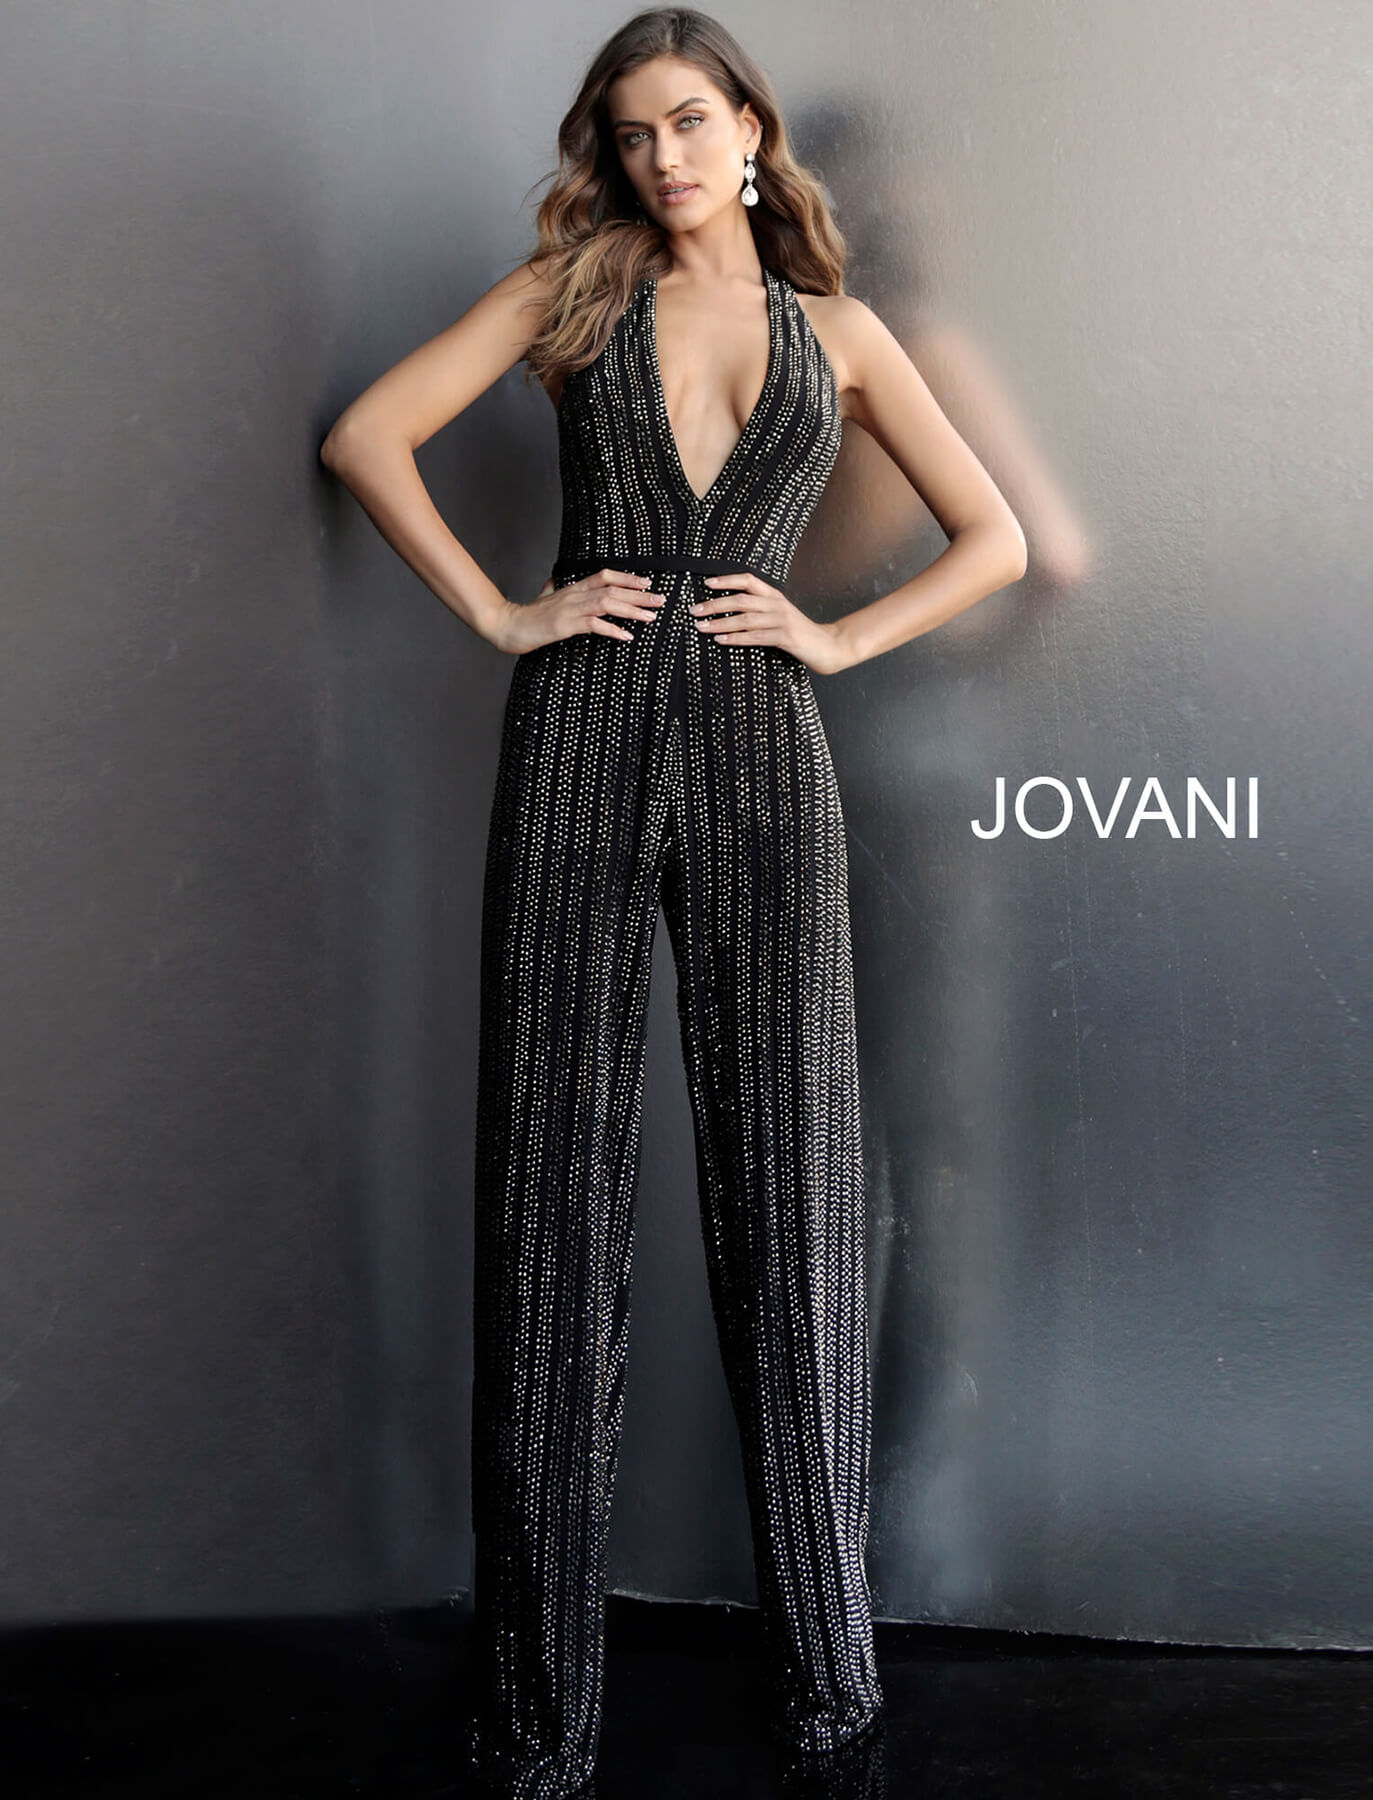 jovani Black Beaded Backless Low V Neck Prom Jumpsuit 65051 on mobile 1